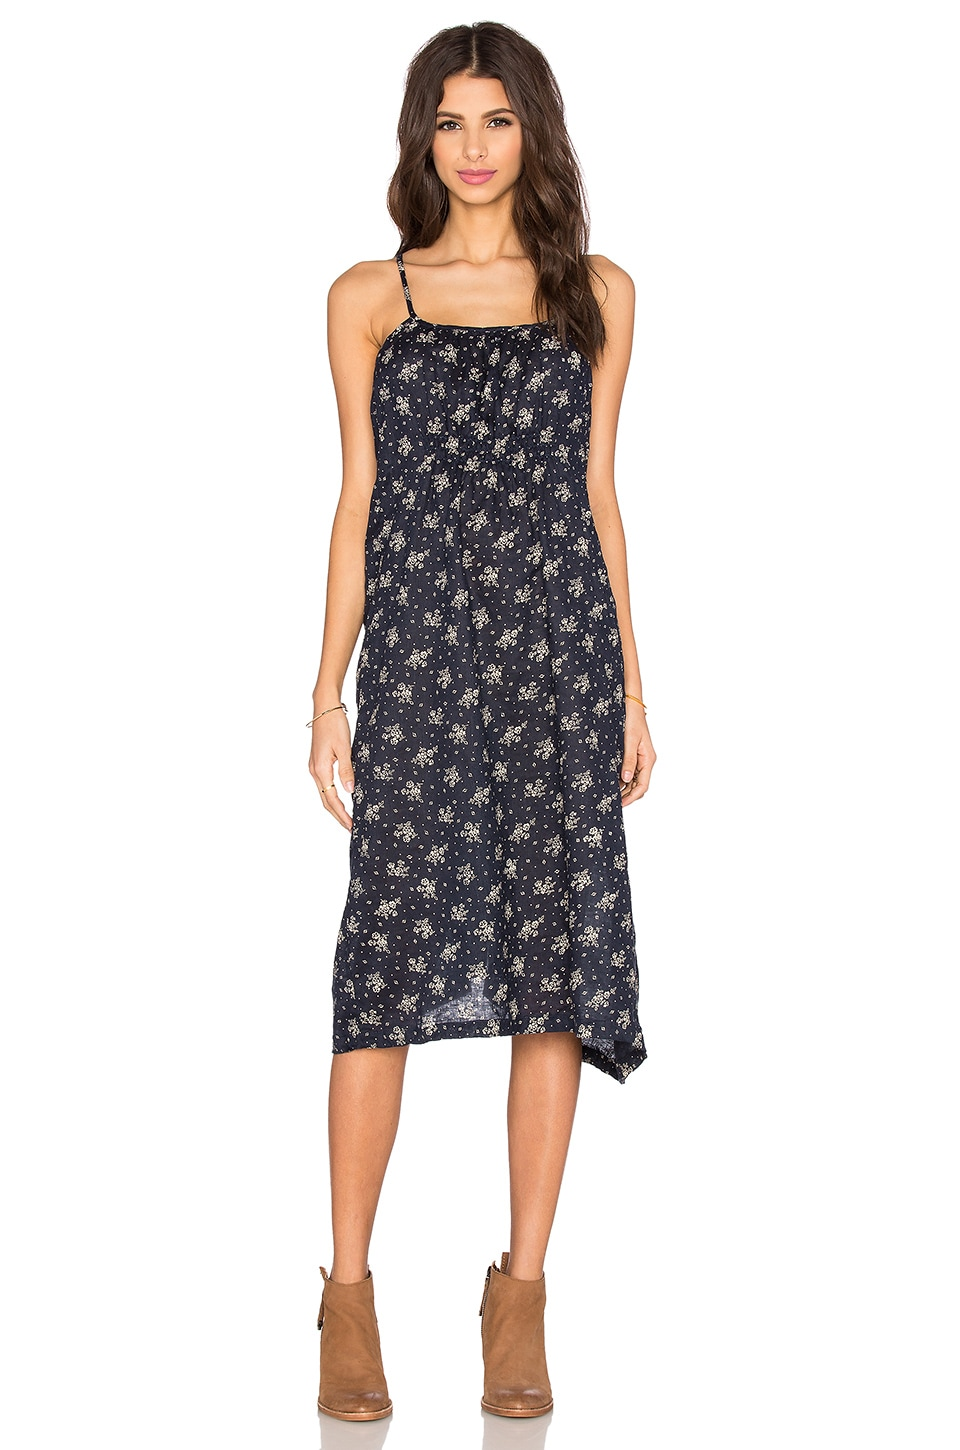 CP SHADES Elyse Floral Dress in Navy Floral